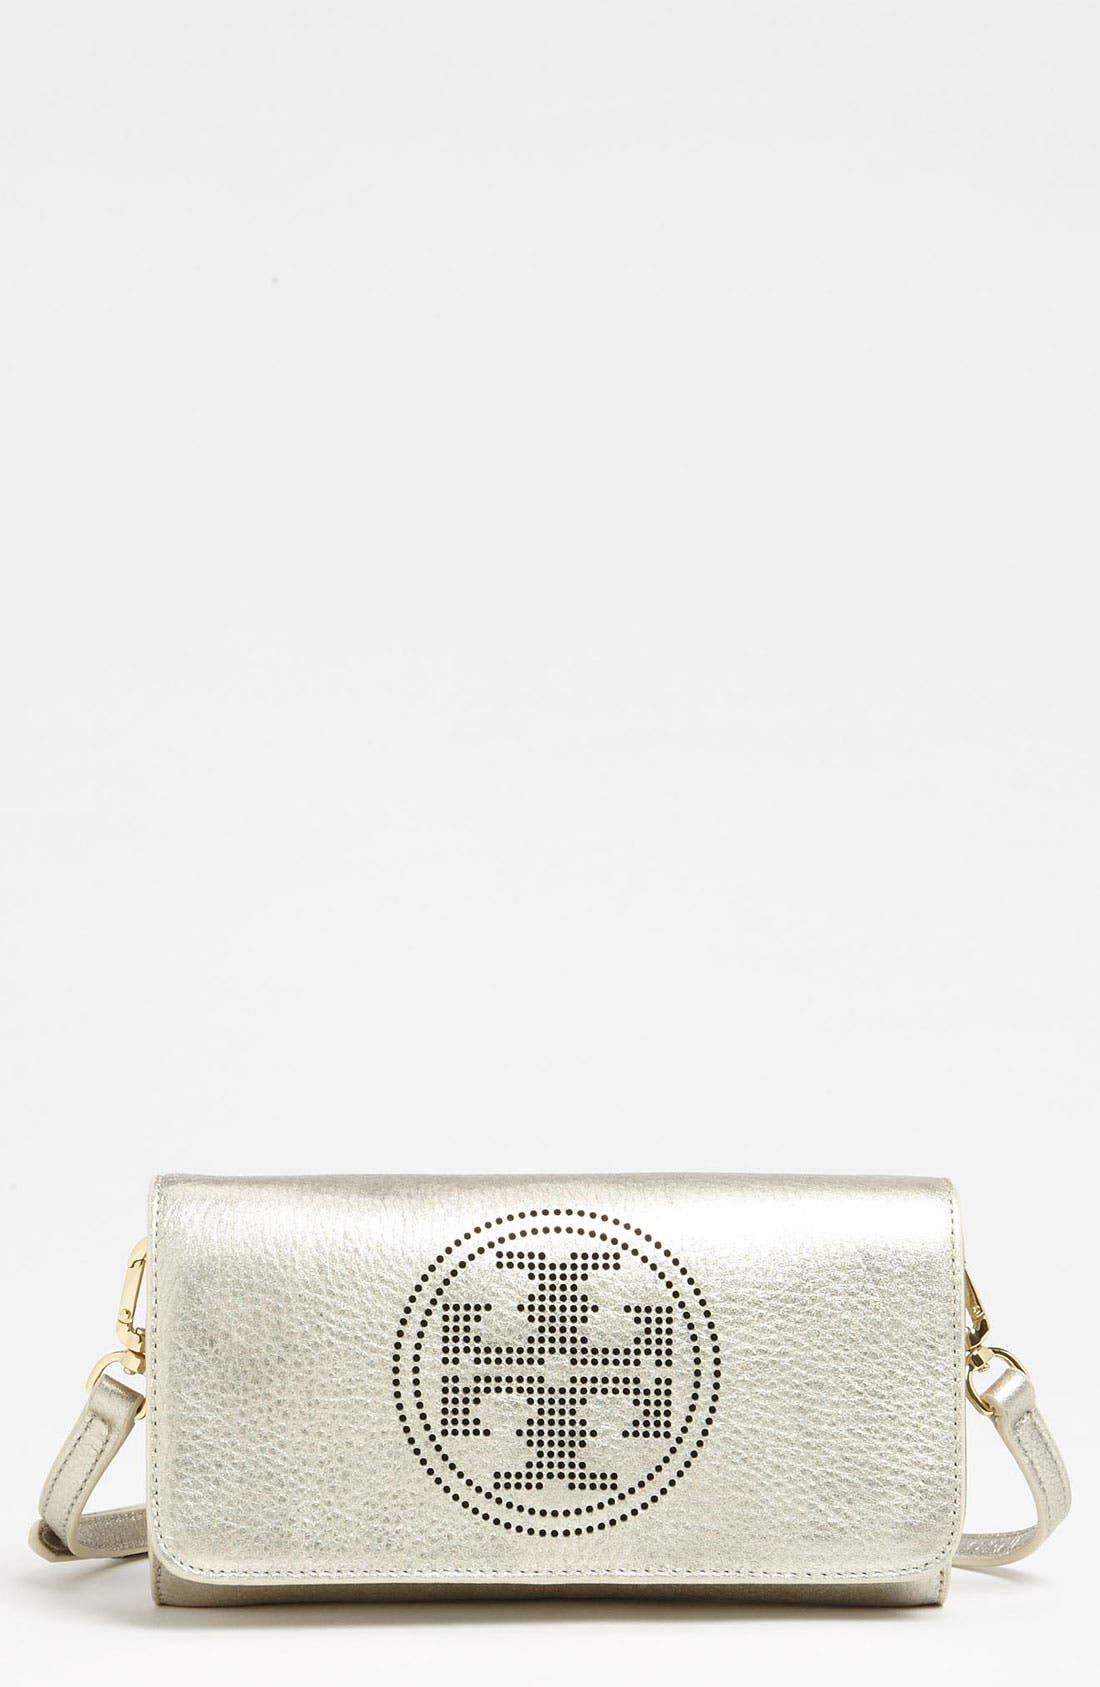 Main Image - Tory Burch 'Small' Perforated Logo Clutch